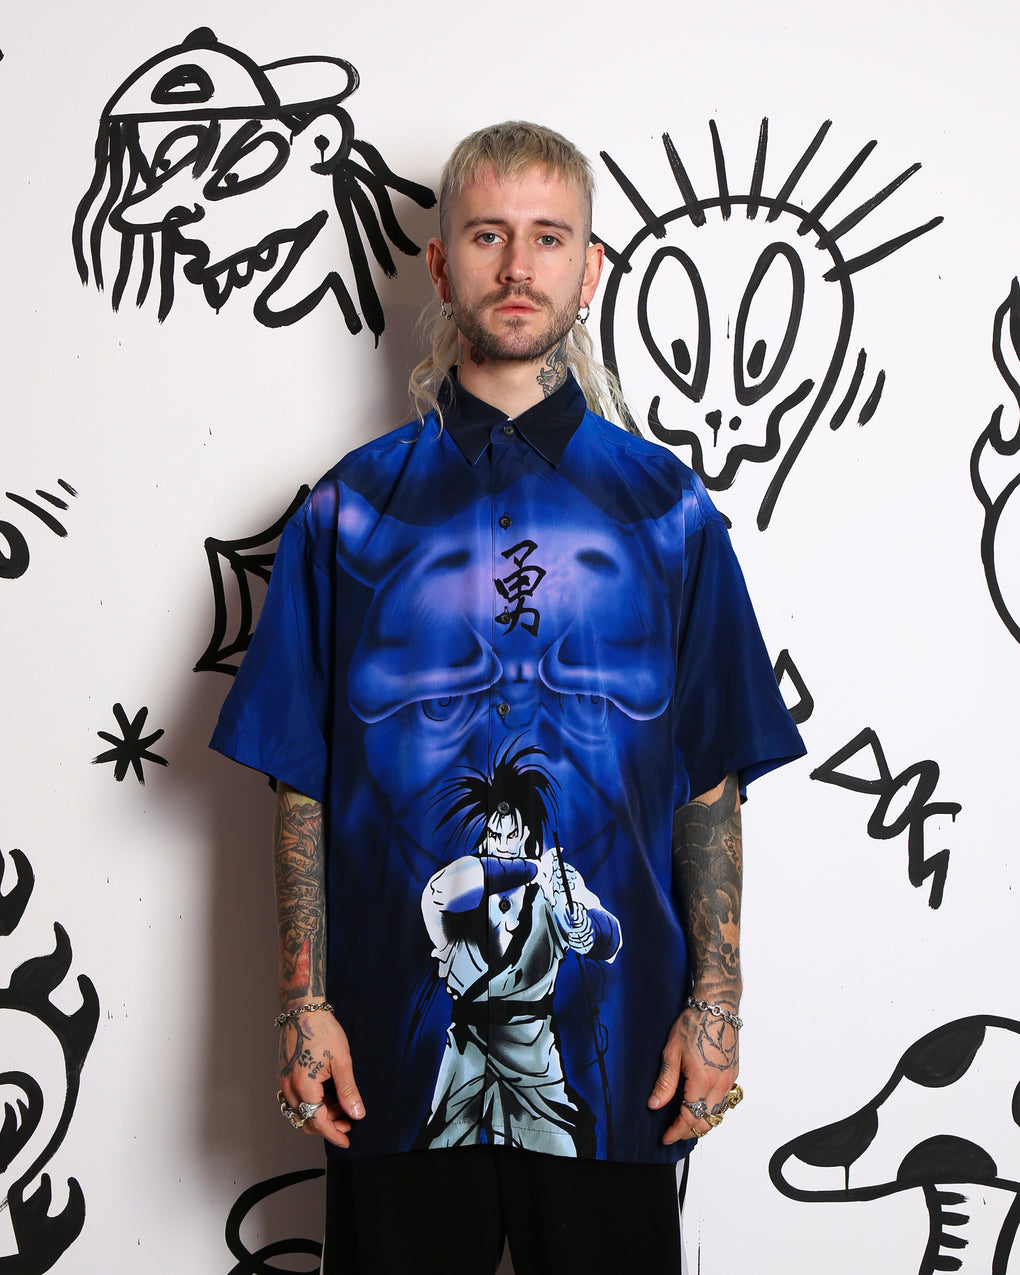 SAMURAI DEMON SHIRT